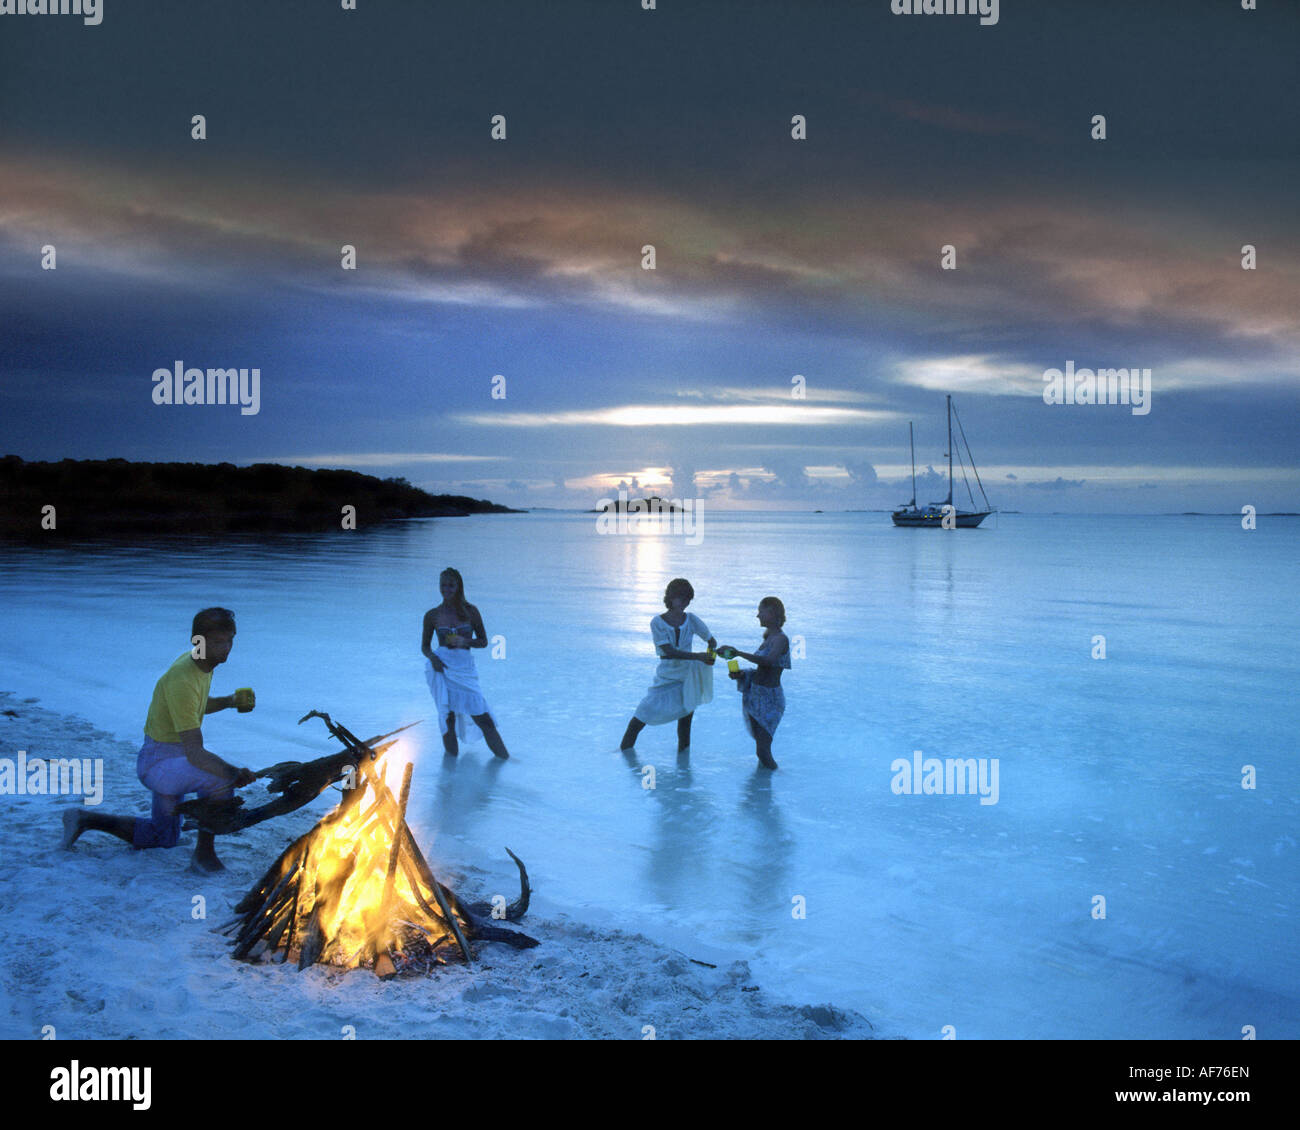 BS - BAHAMA ISLANDS: Barbeque at Grand Cay - Stock Image